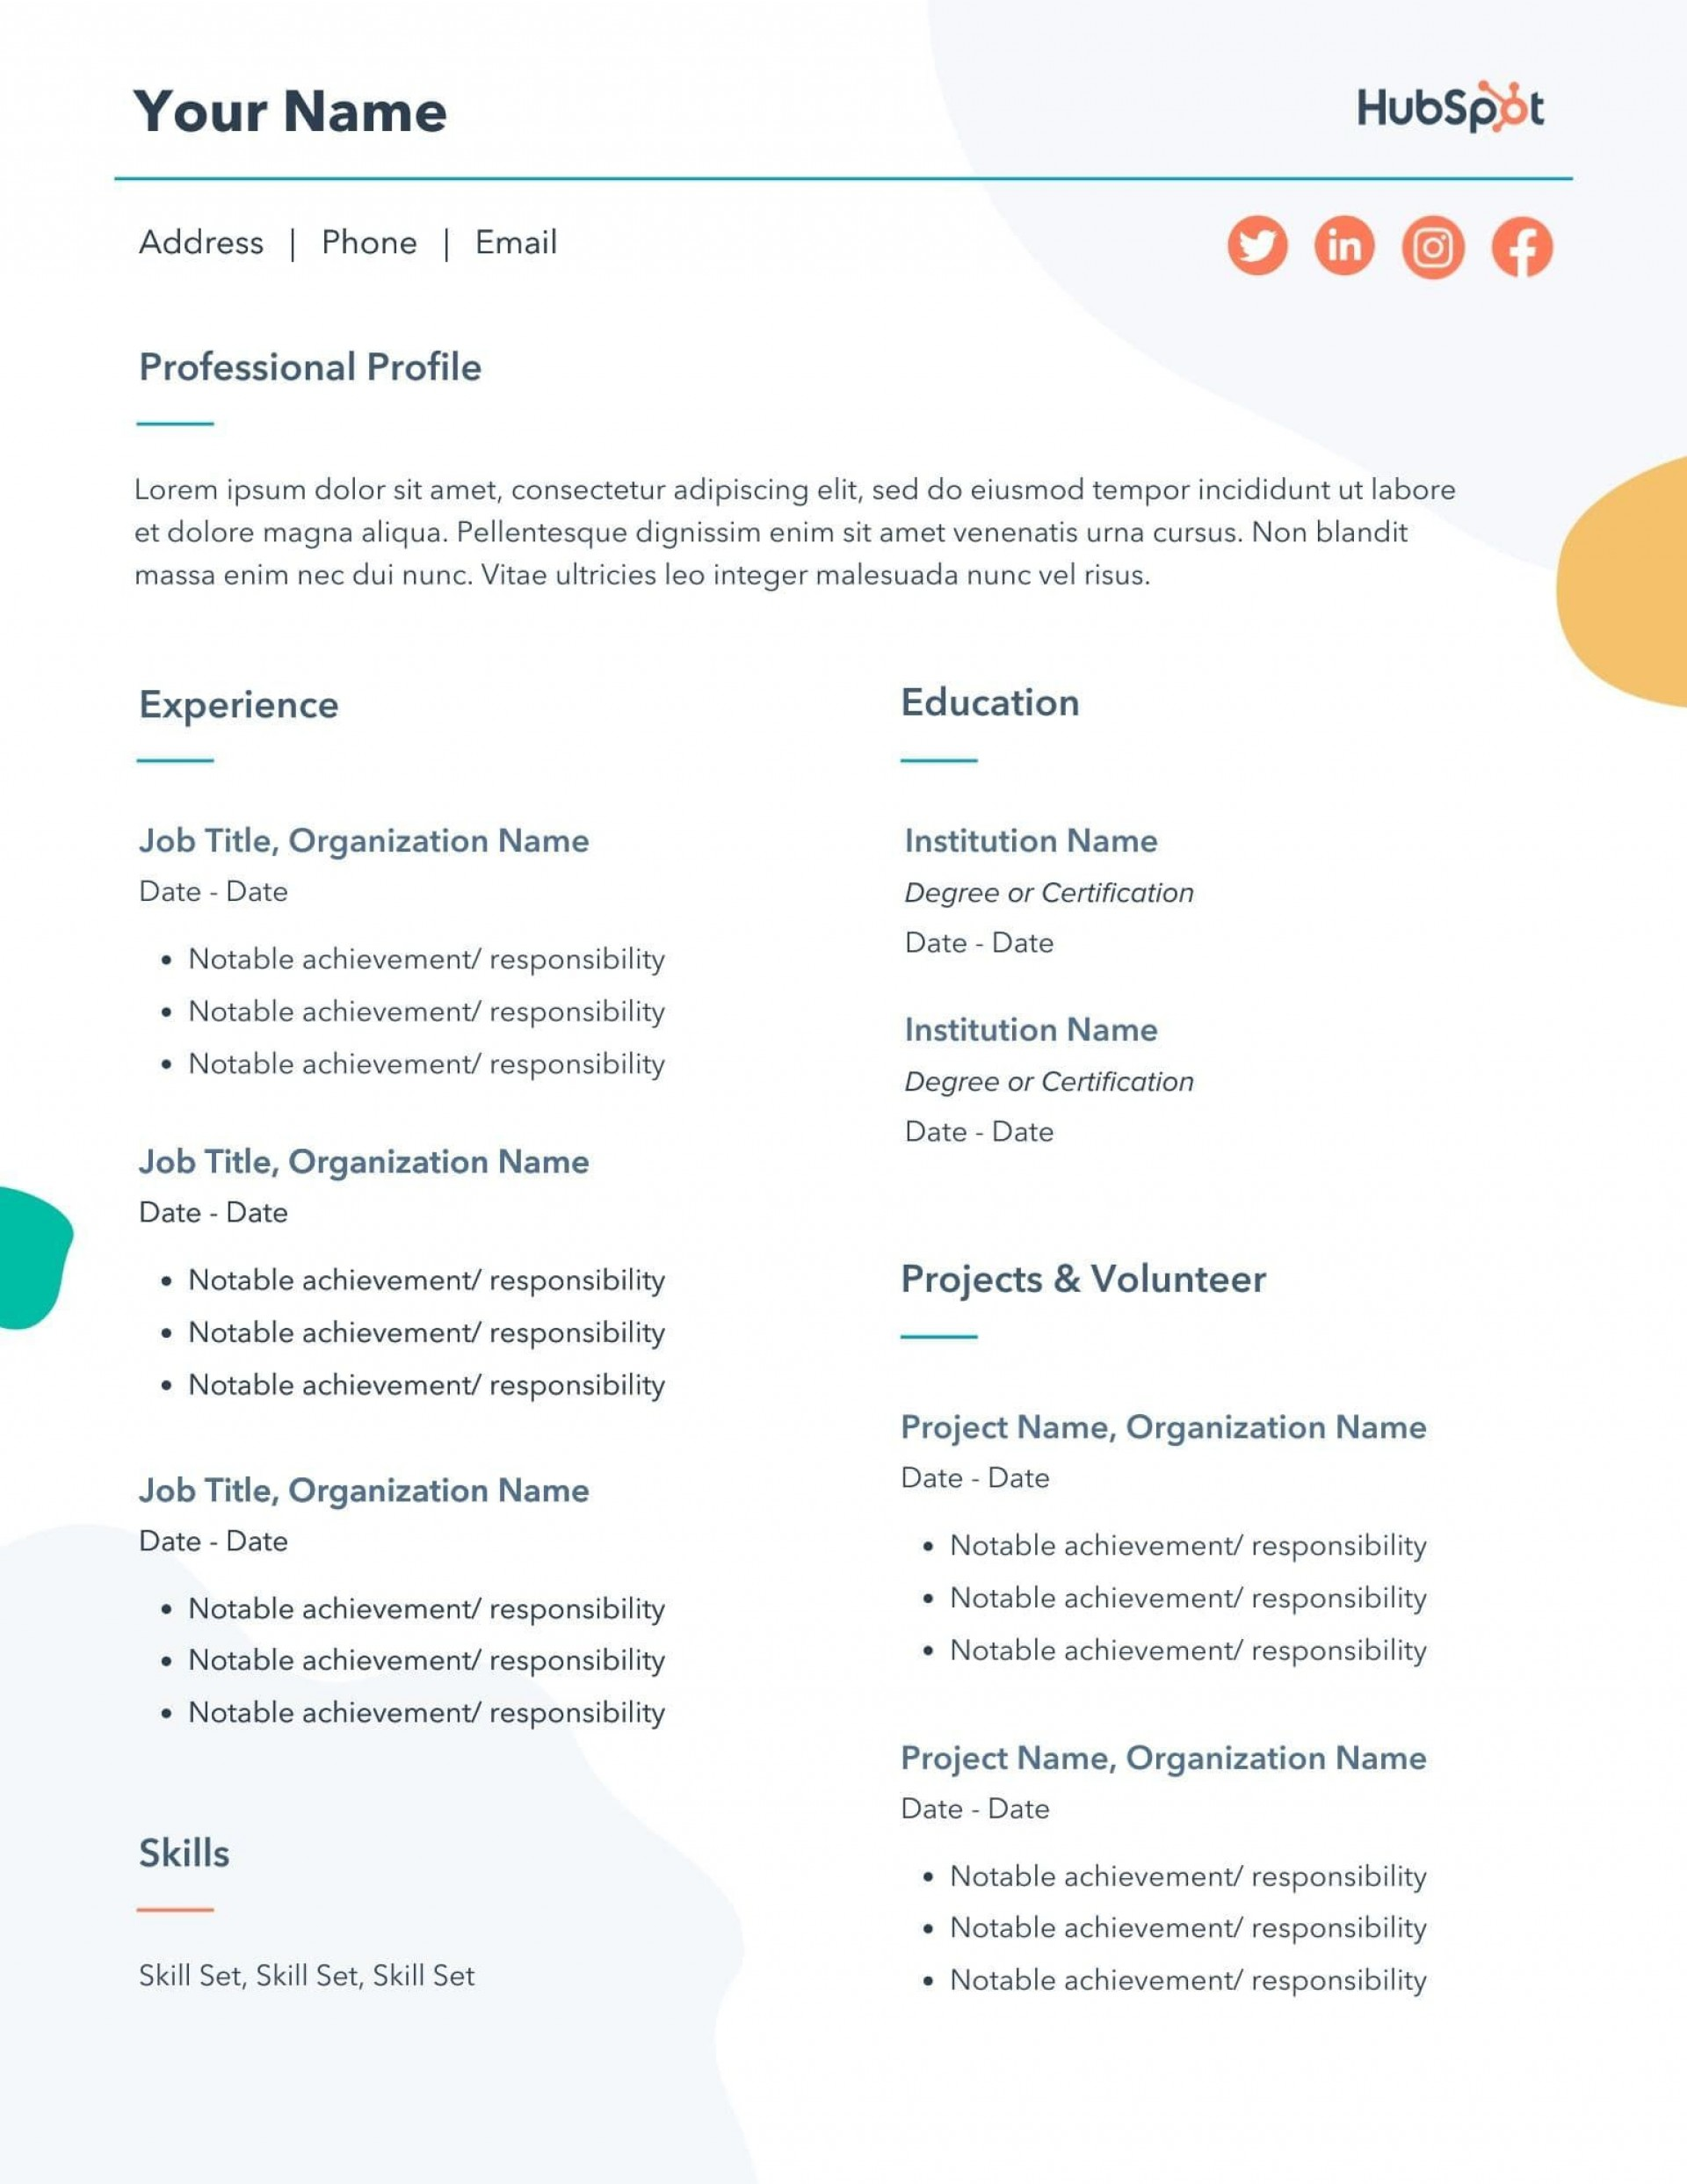 008 Unforgettable How To Make A Resume Template On Microsoft Word Inspiration  Create Cv/resume In Docx1920